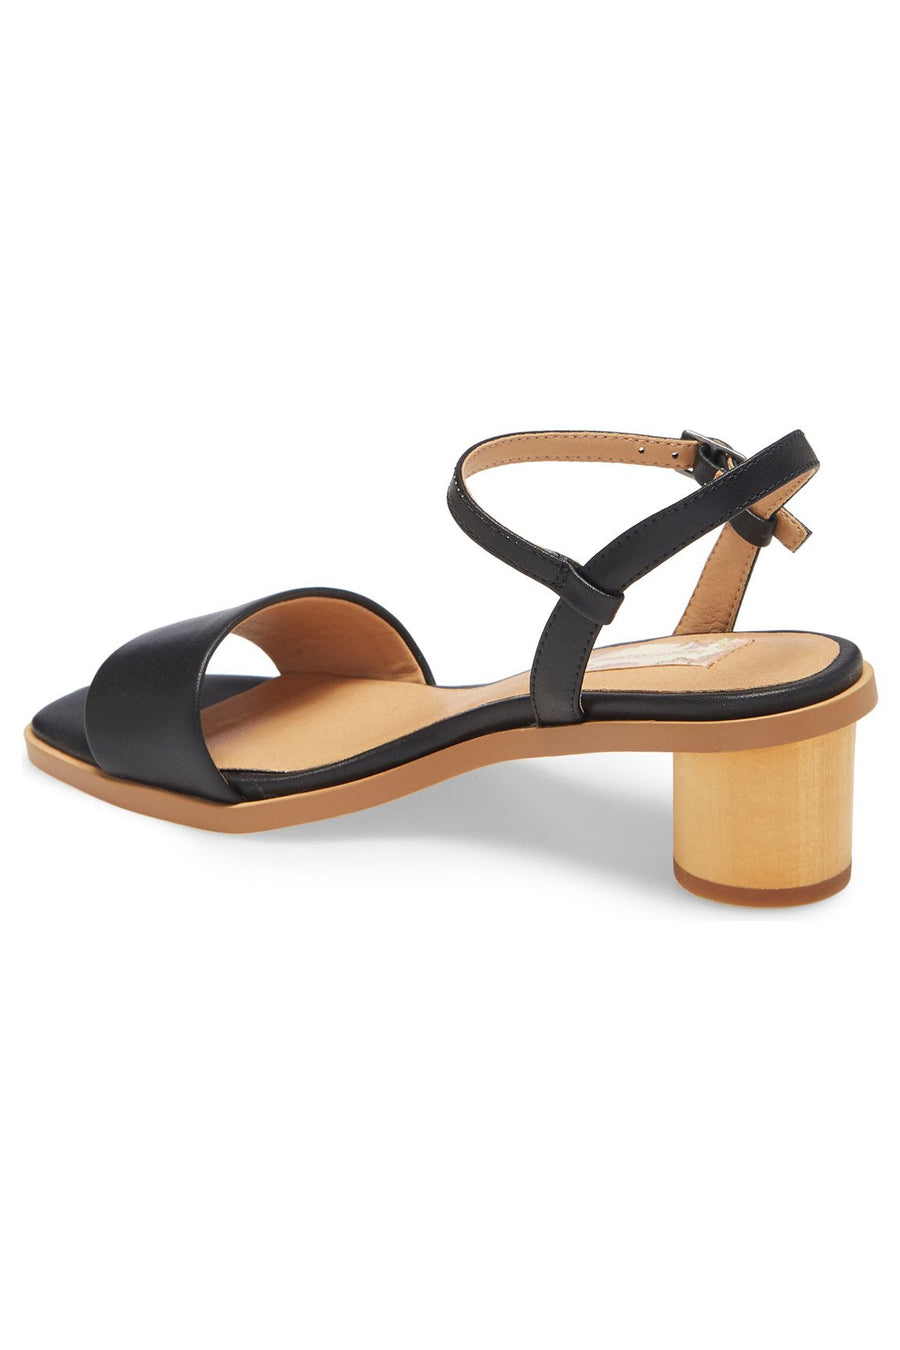 Topanga Black Vegan Leather Block Heel Sandal Master